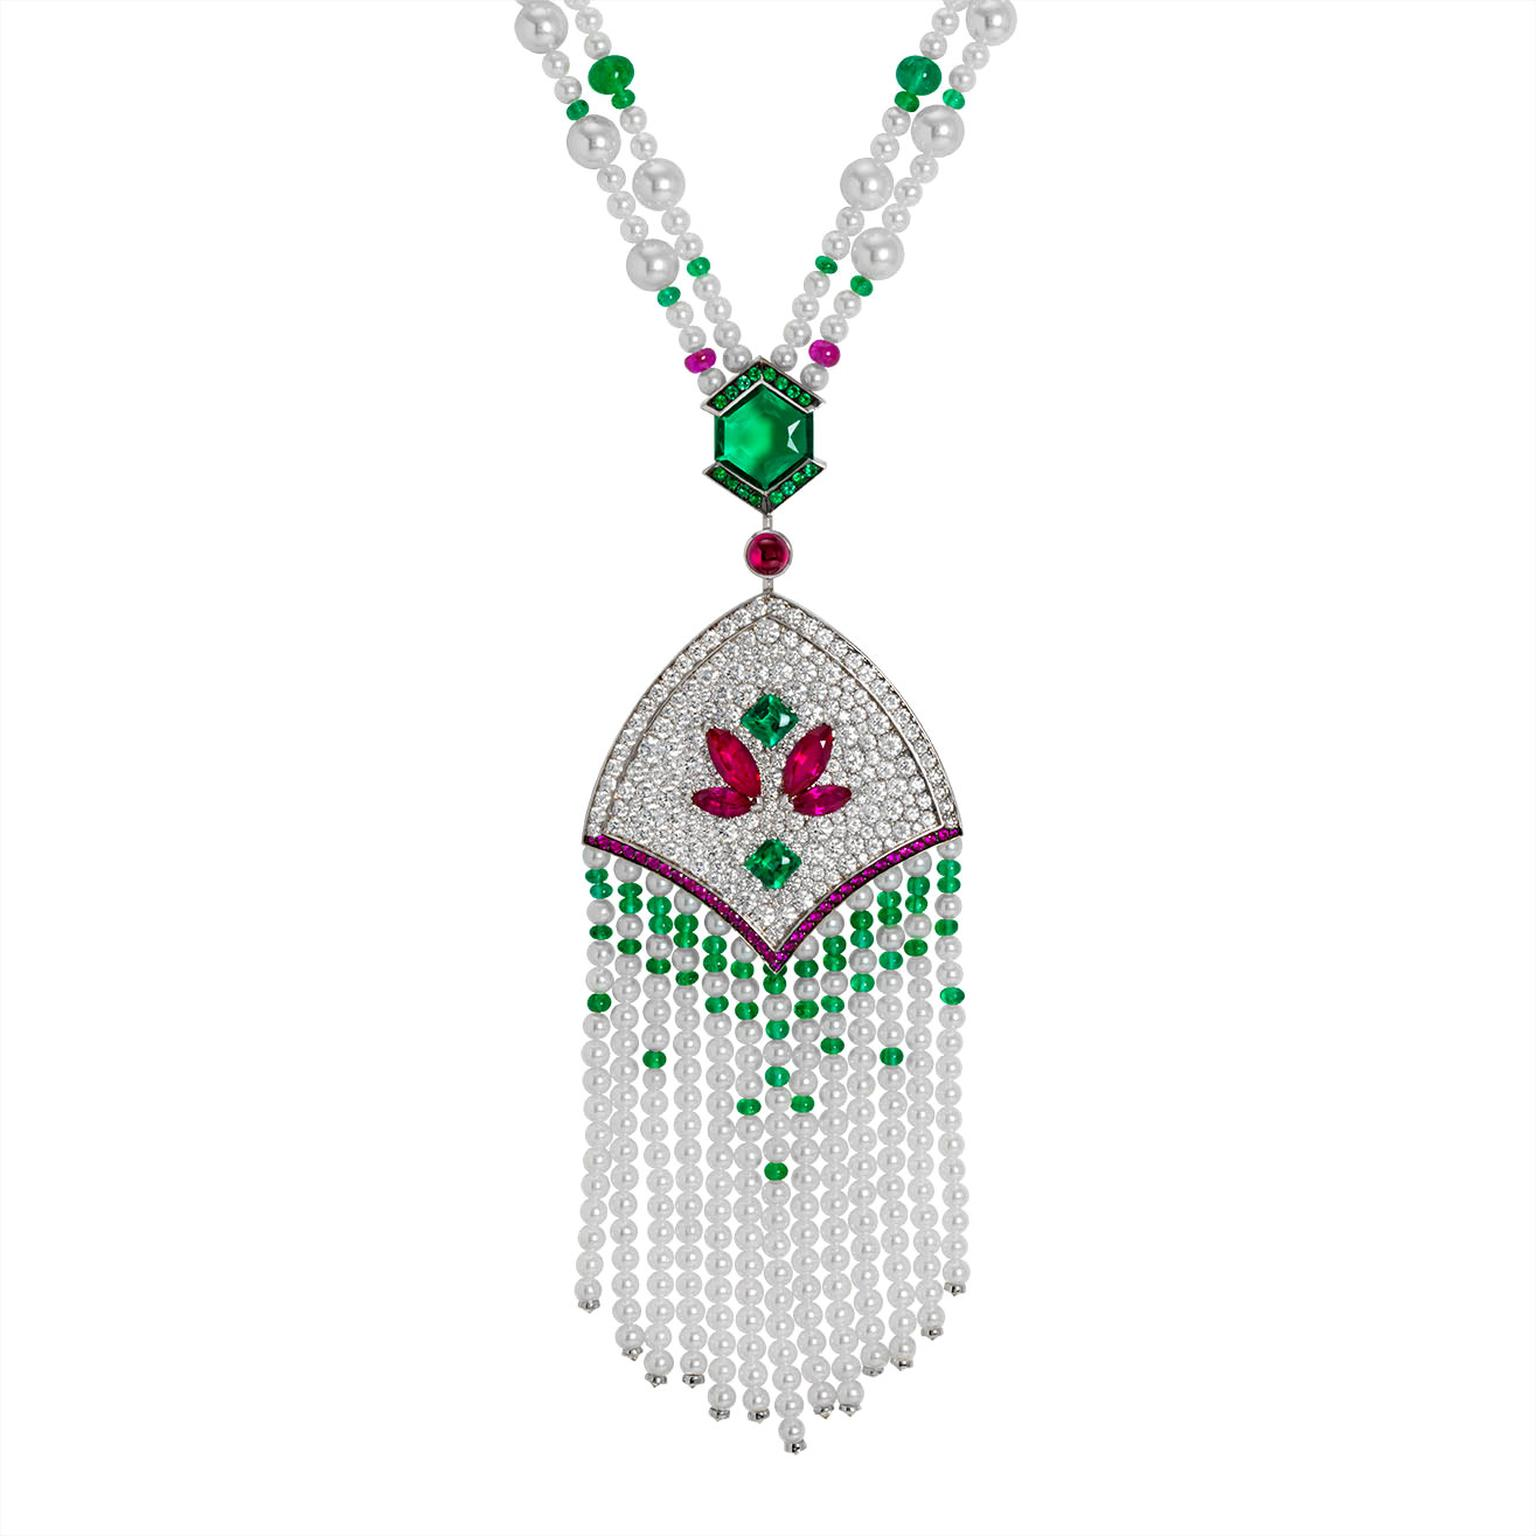 John Rubel diamond, emerald, pearl and ruby necklace